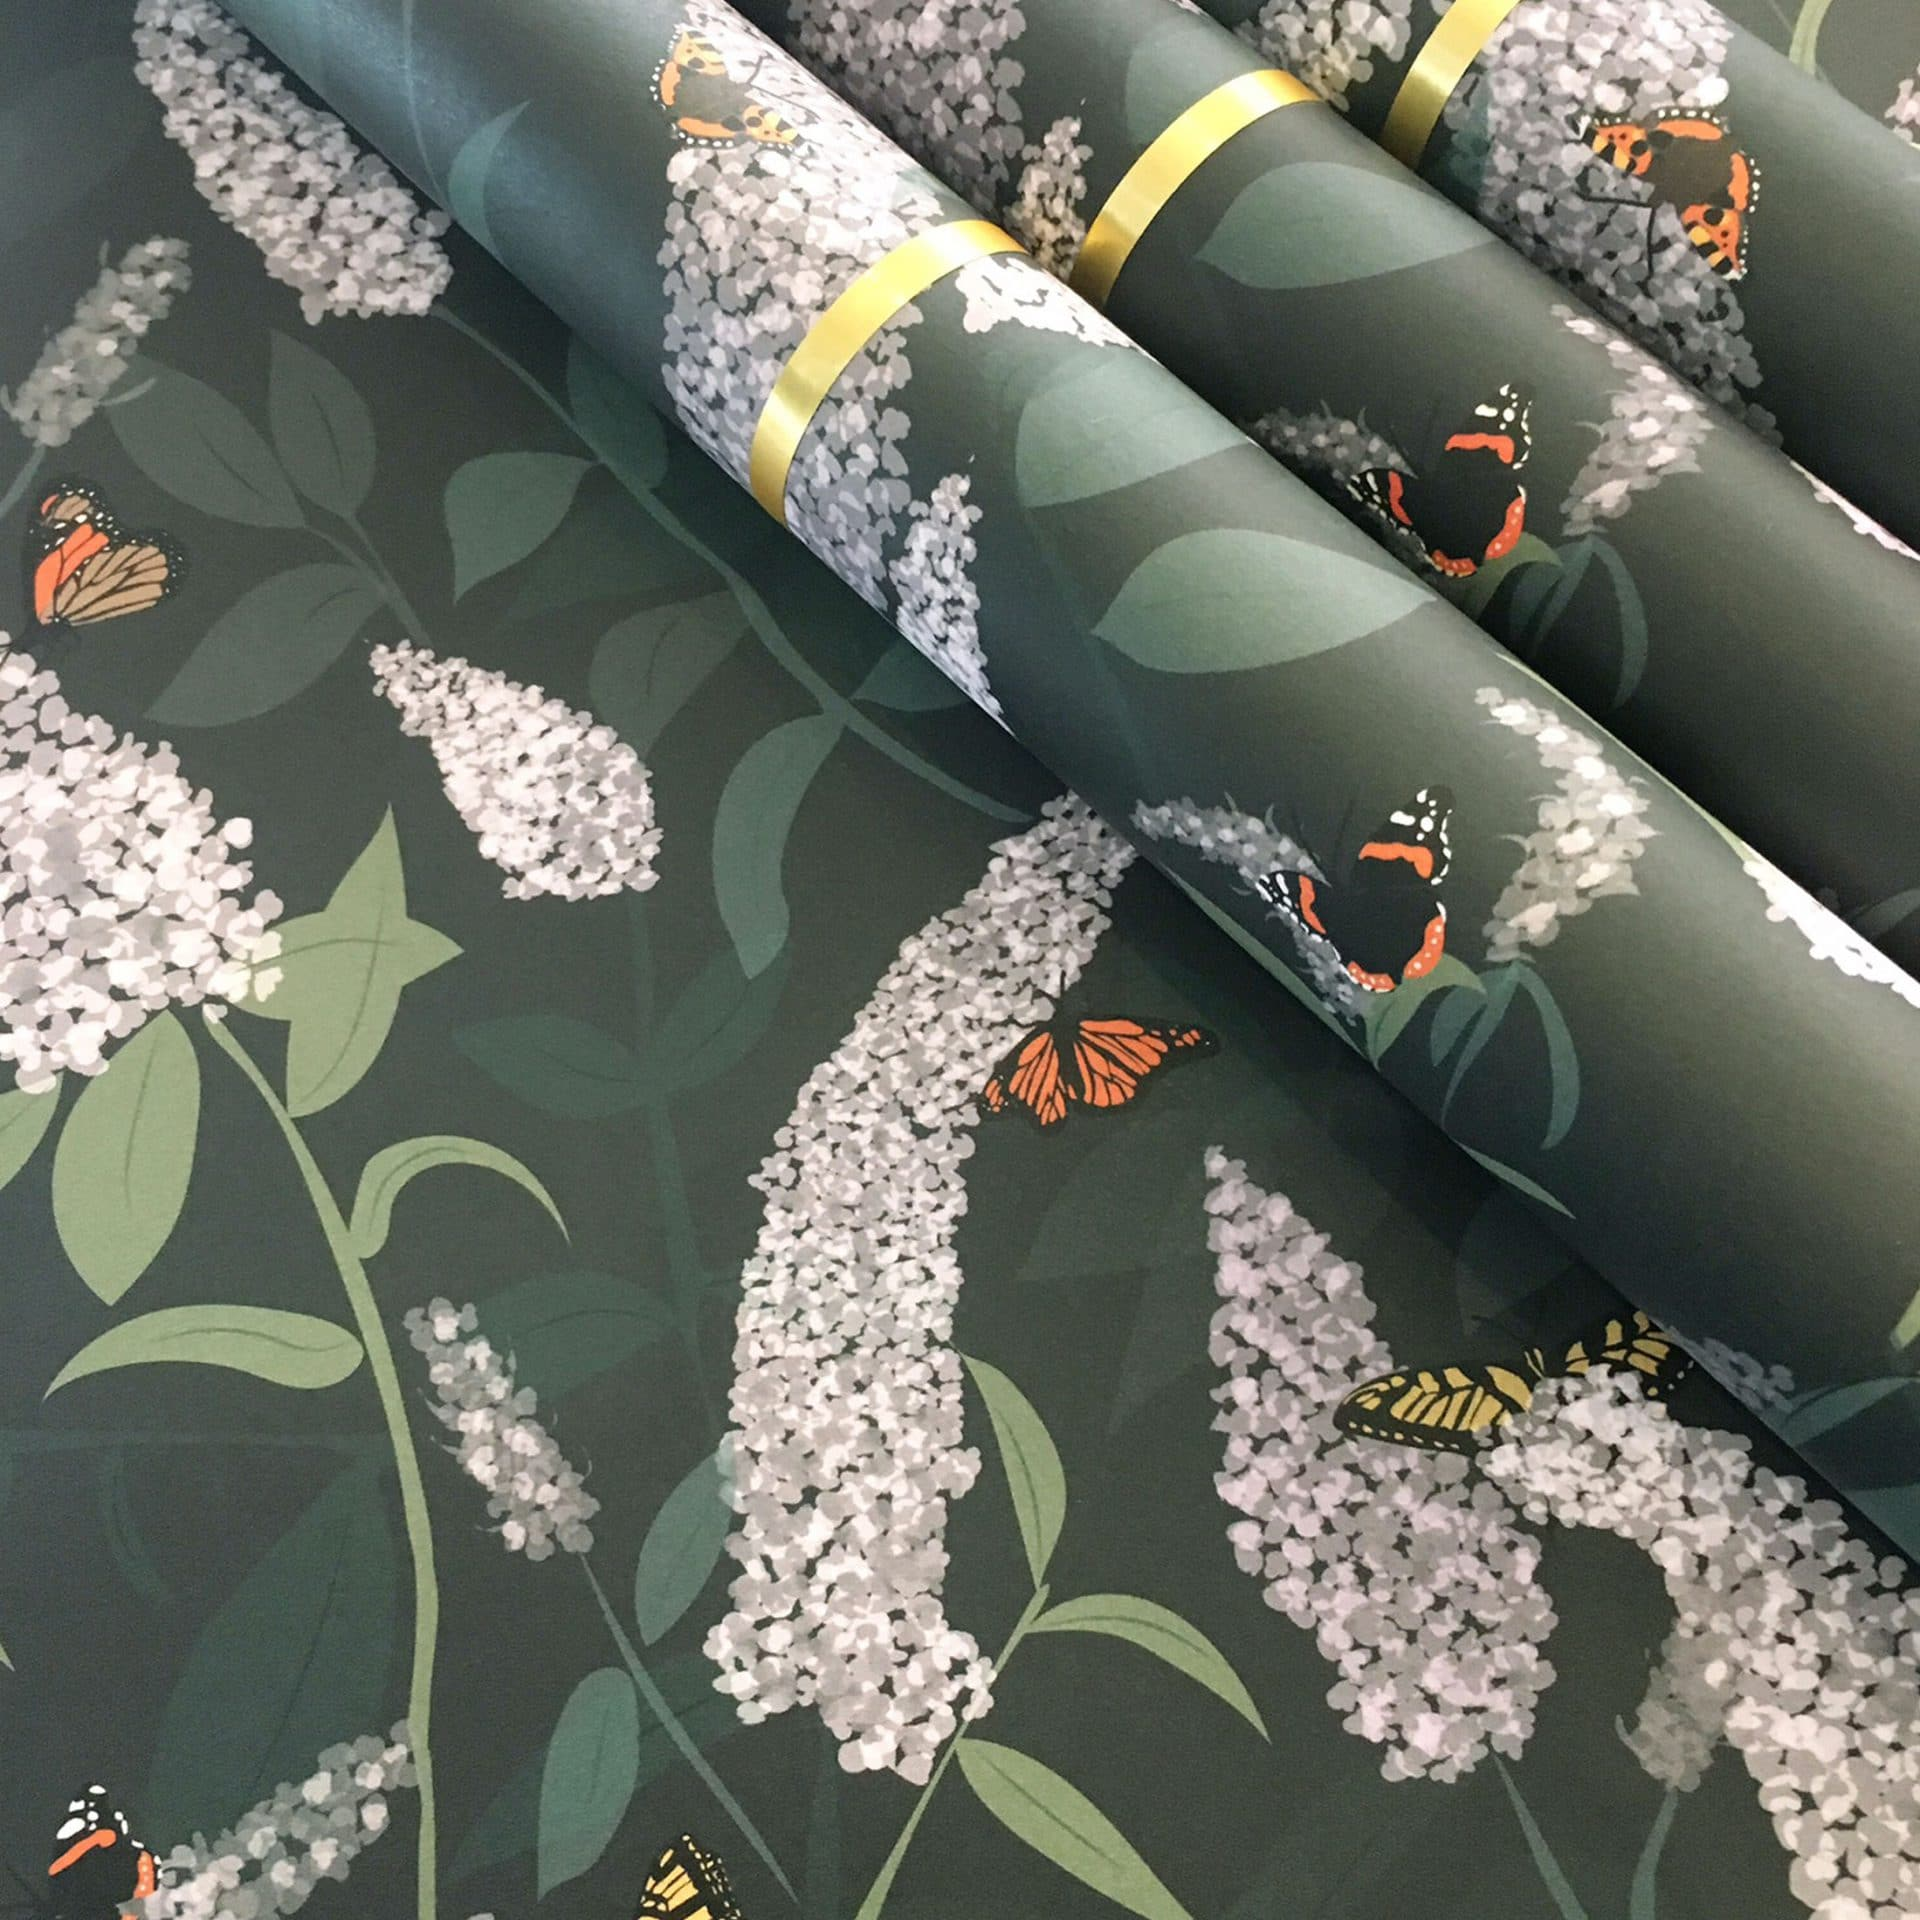 Buddleia floral patterned giftwrap by Lorna Syson.